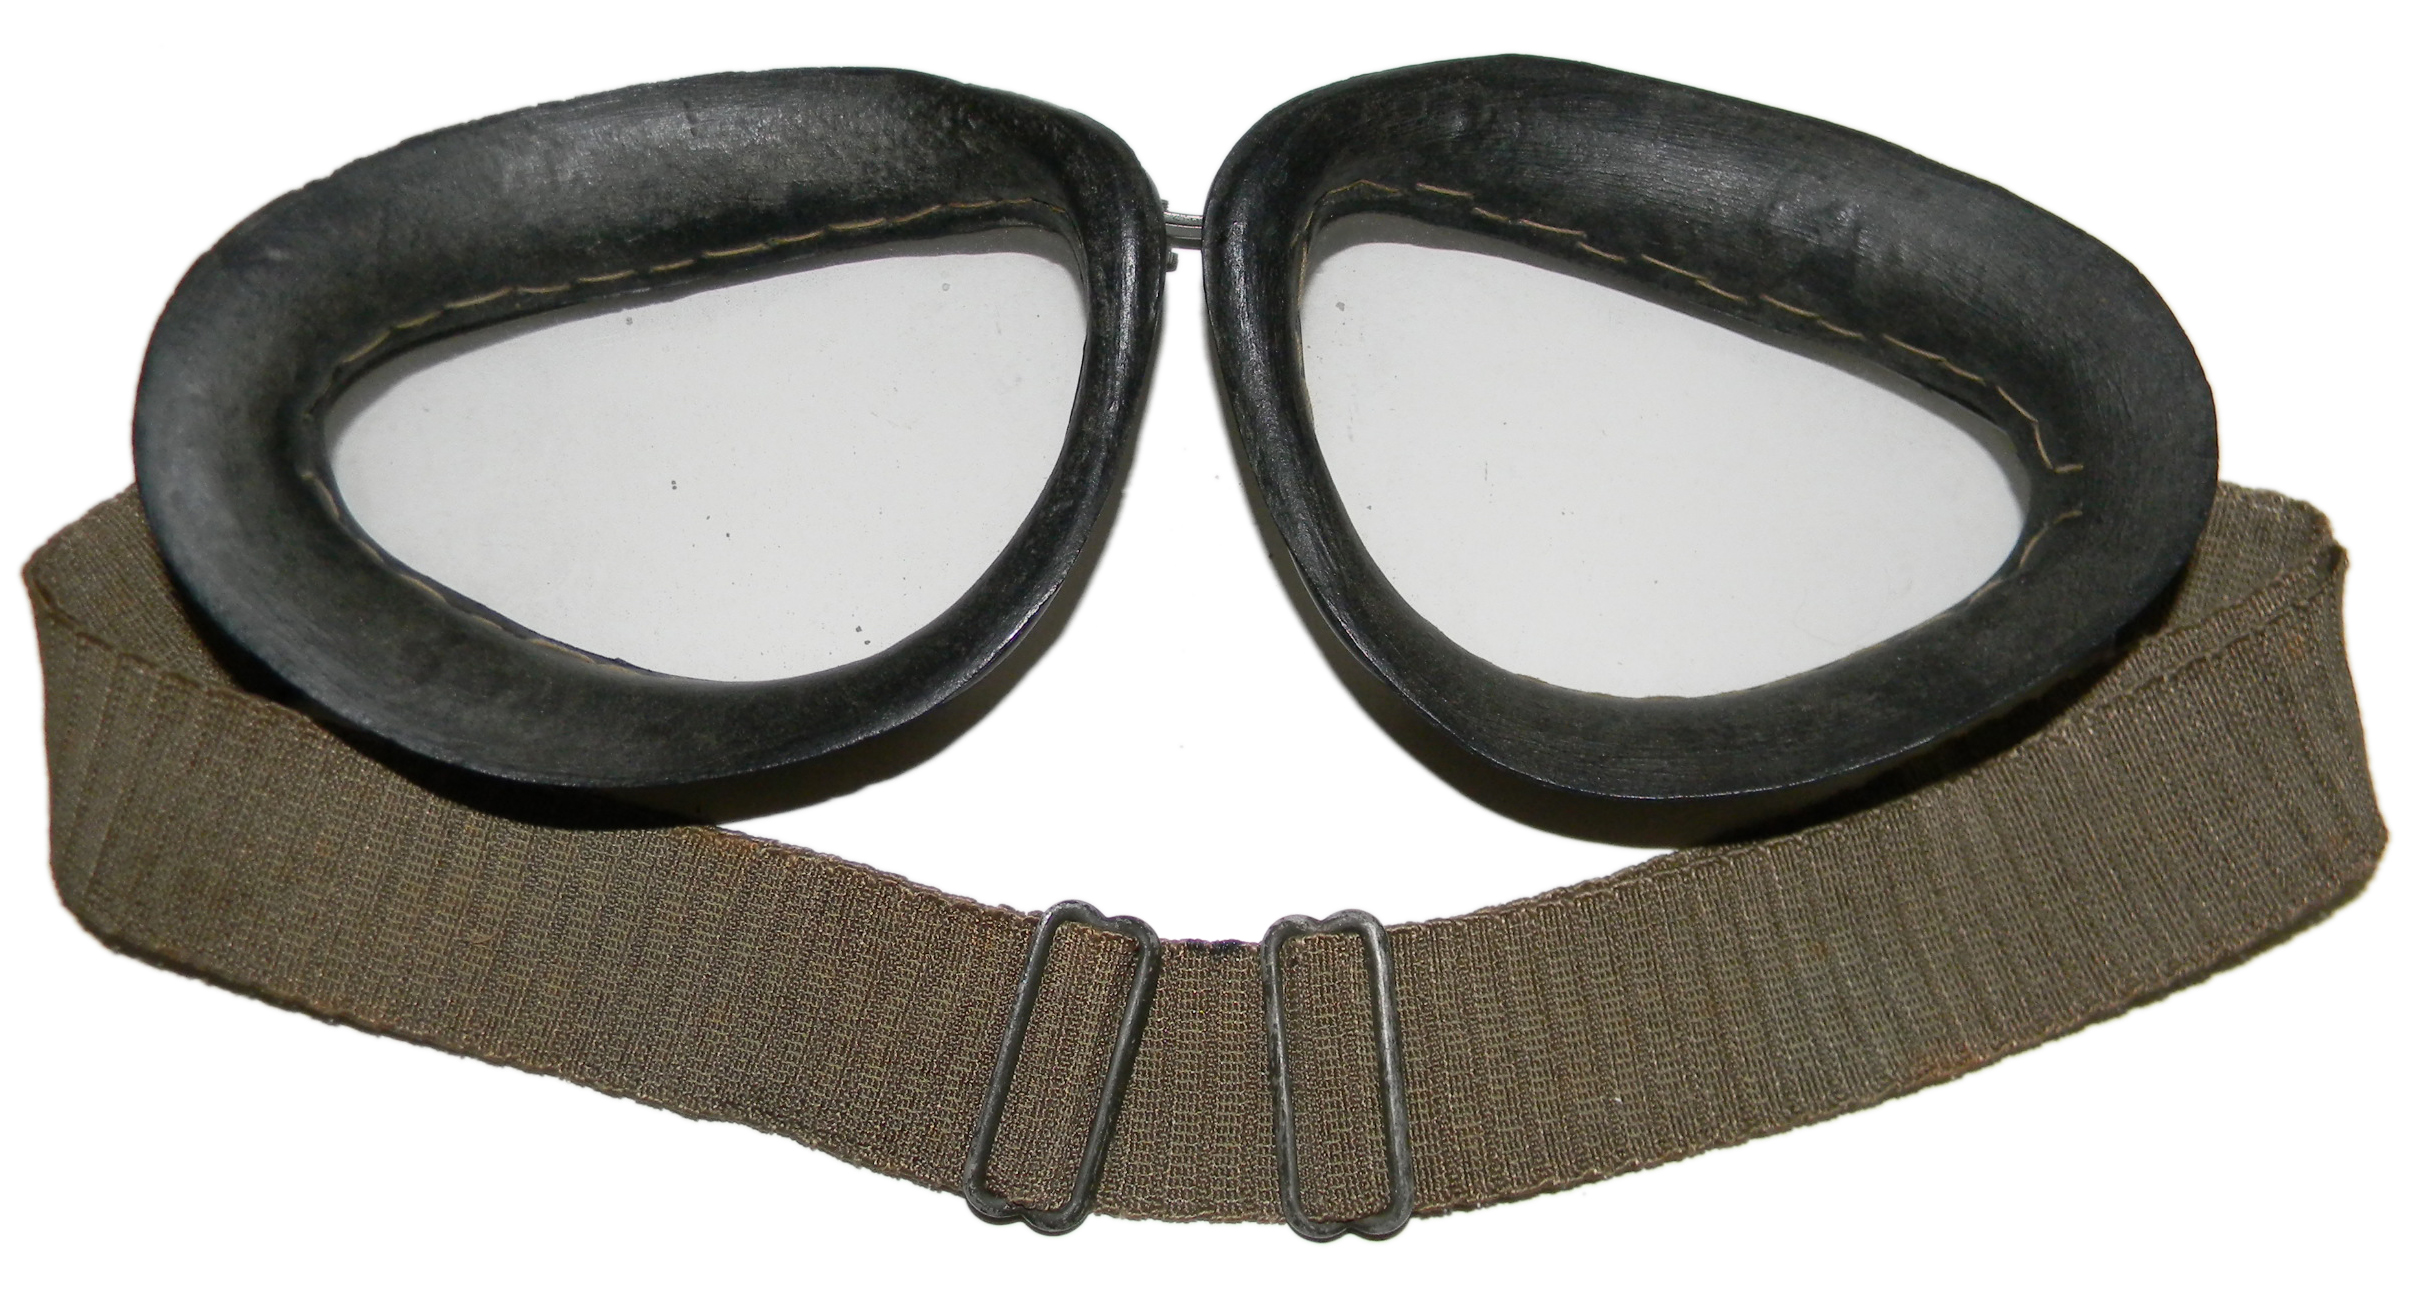 LW Model 306 large lens goggles